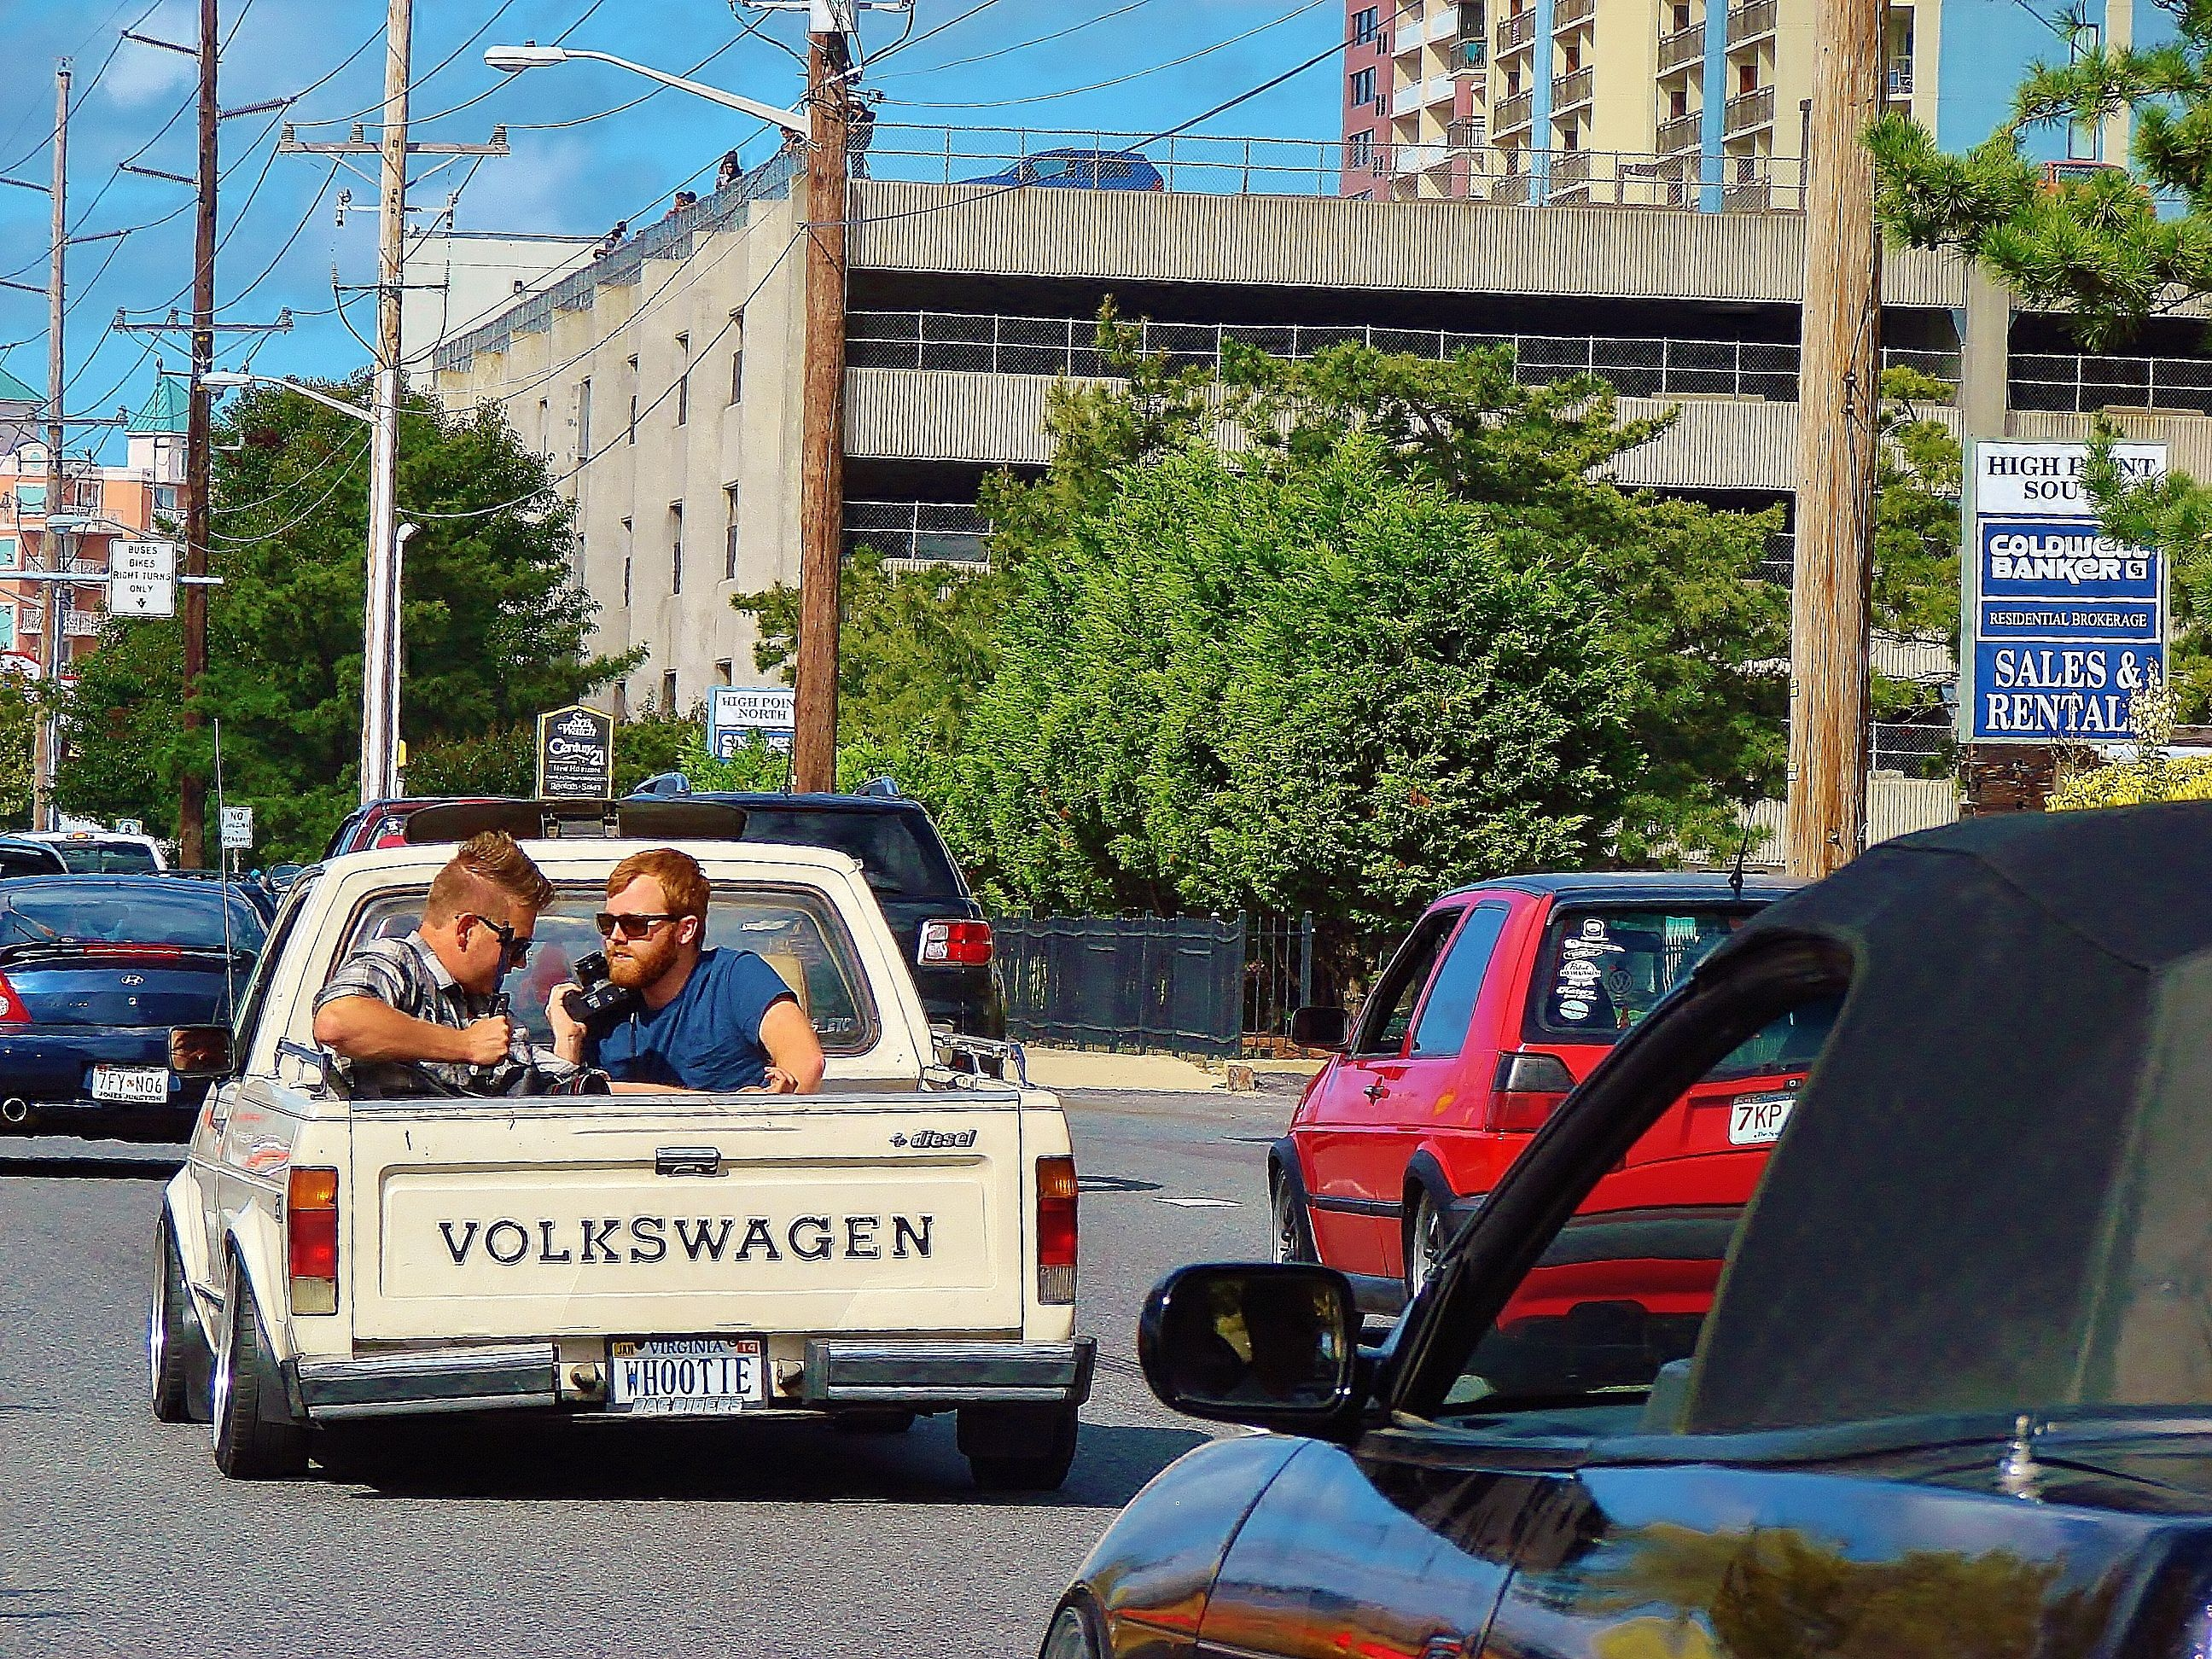 12 best caddy mk1 images on Pinterest  Mk1 Volkswagen caddy and Car